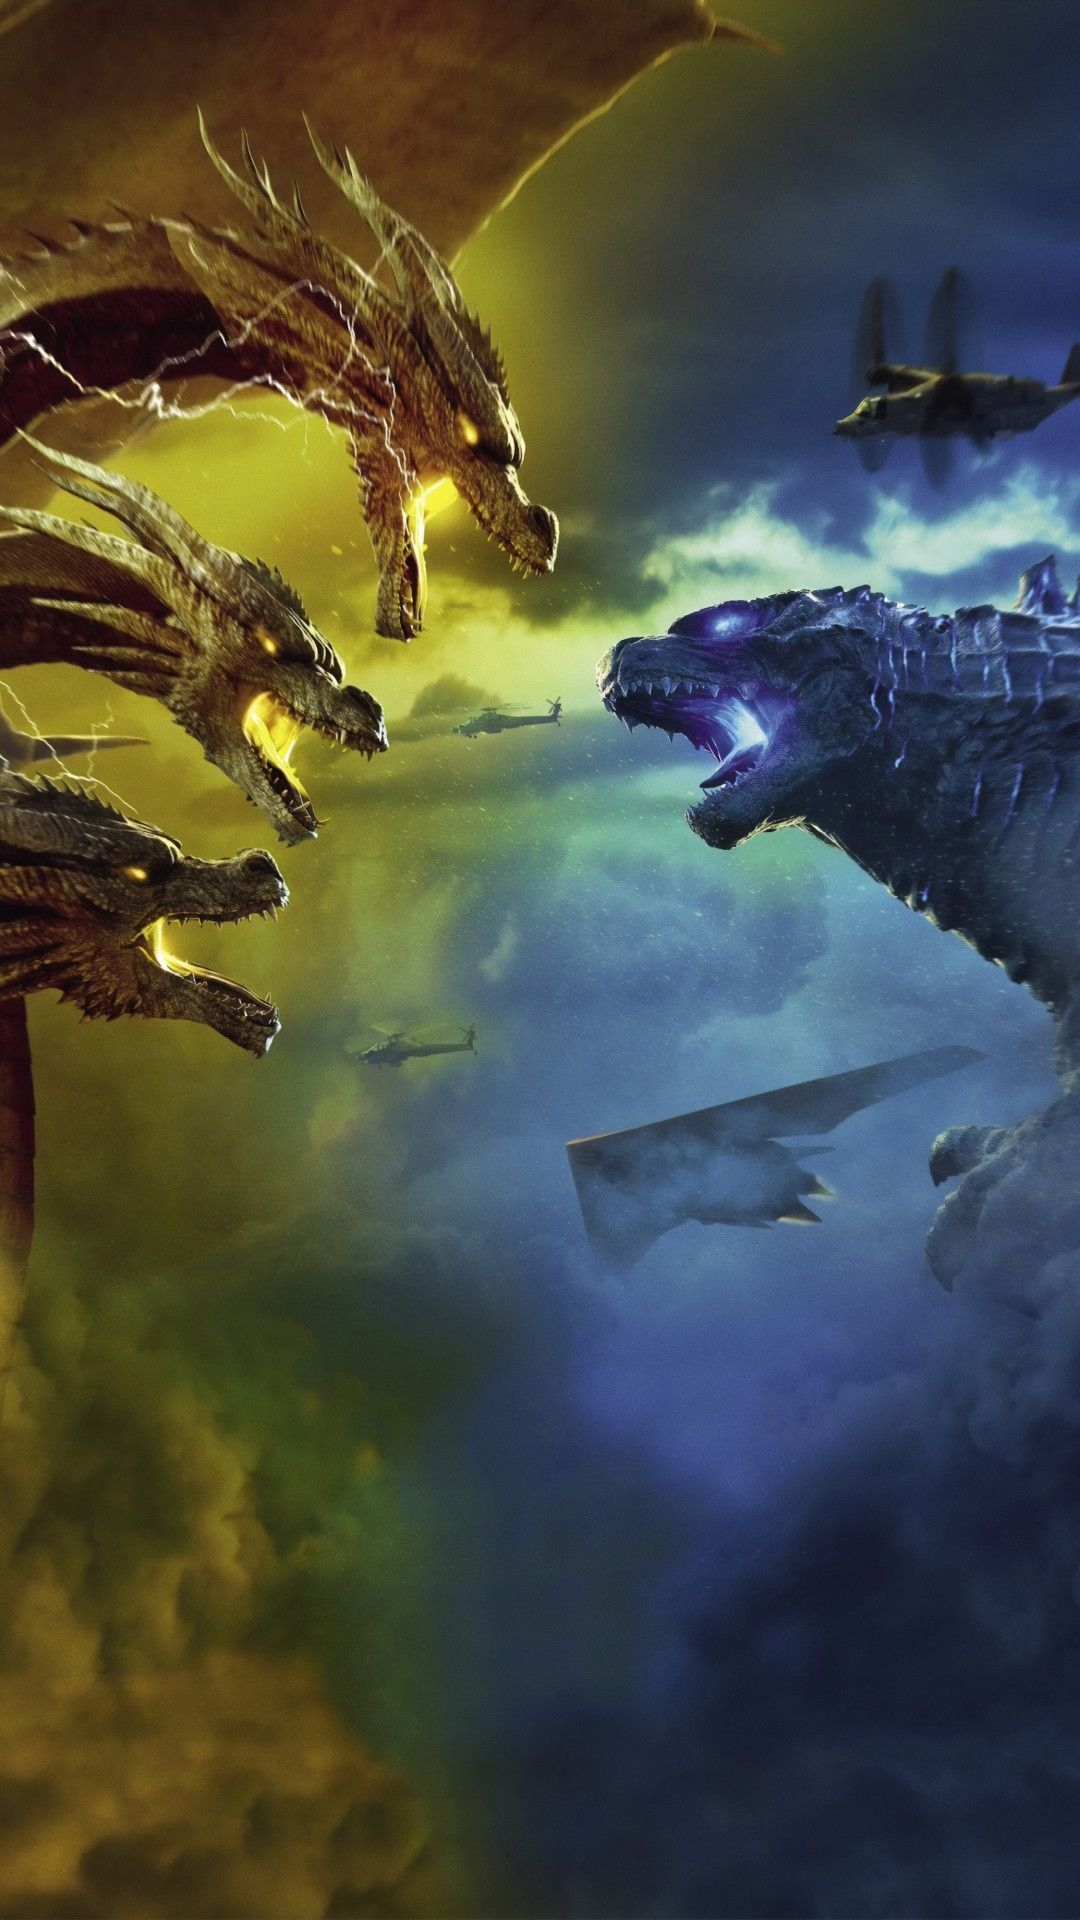 Godzilla King Of The Monsters 4k Mobile Wallpaper Iphone Android Samsung Pixel Xiaomi In 2020 Godzilla Movie Monsters Monster